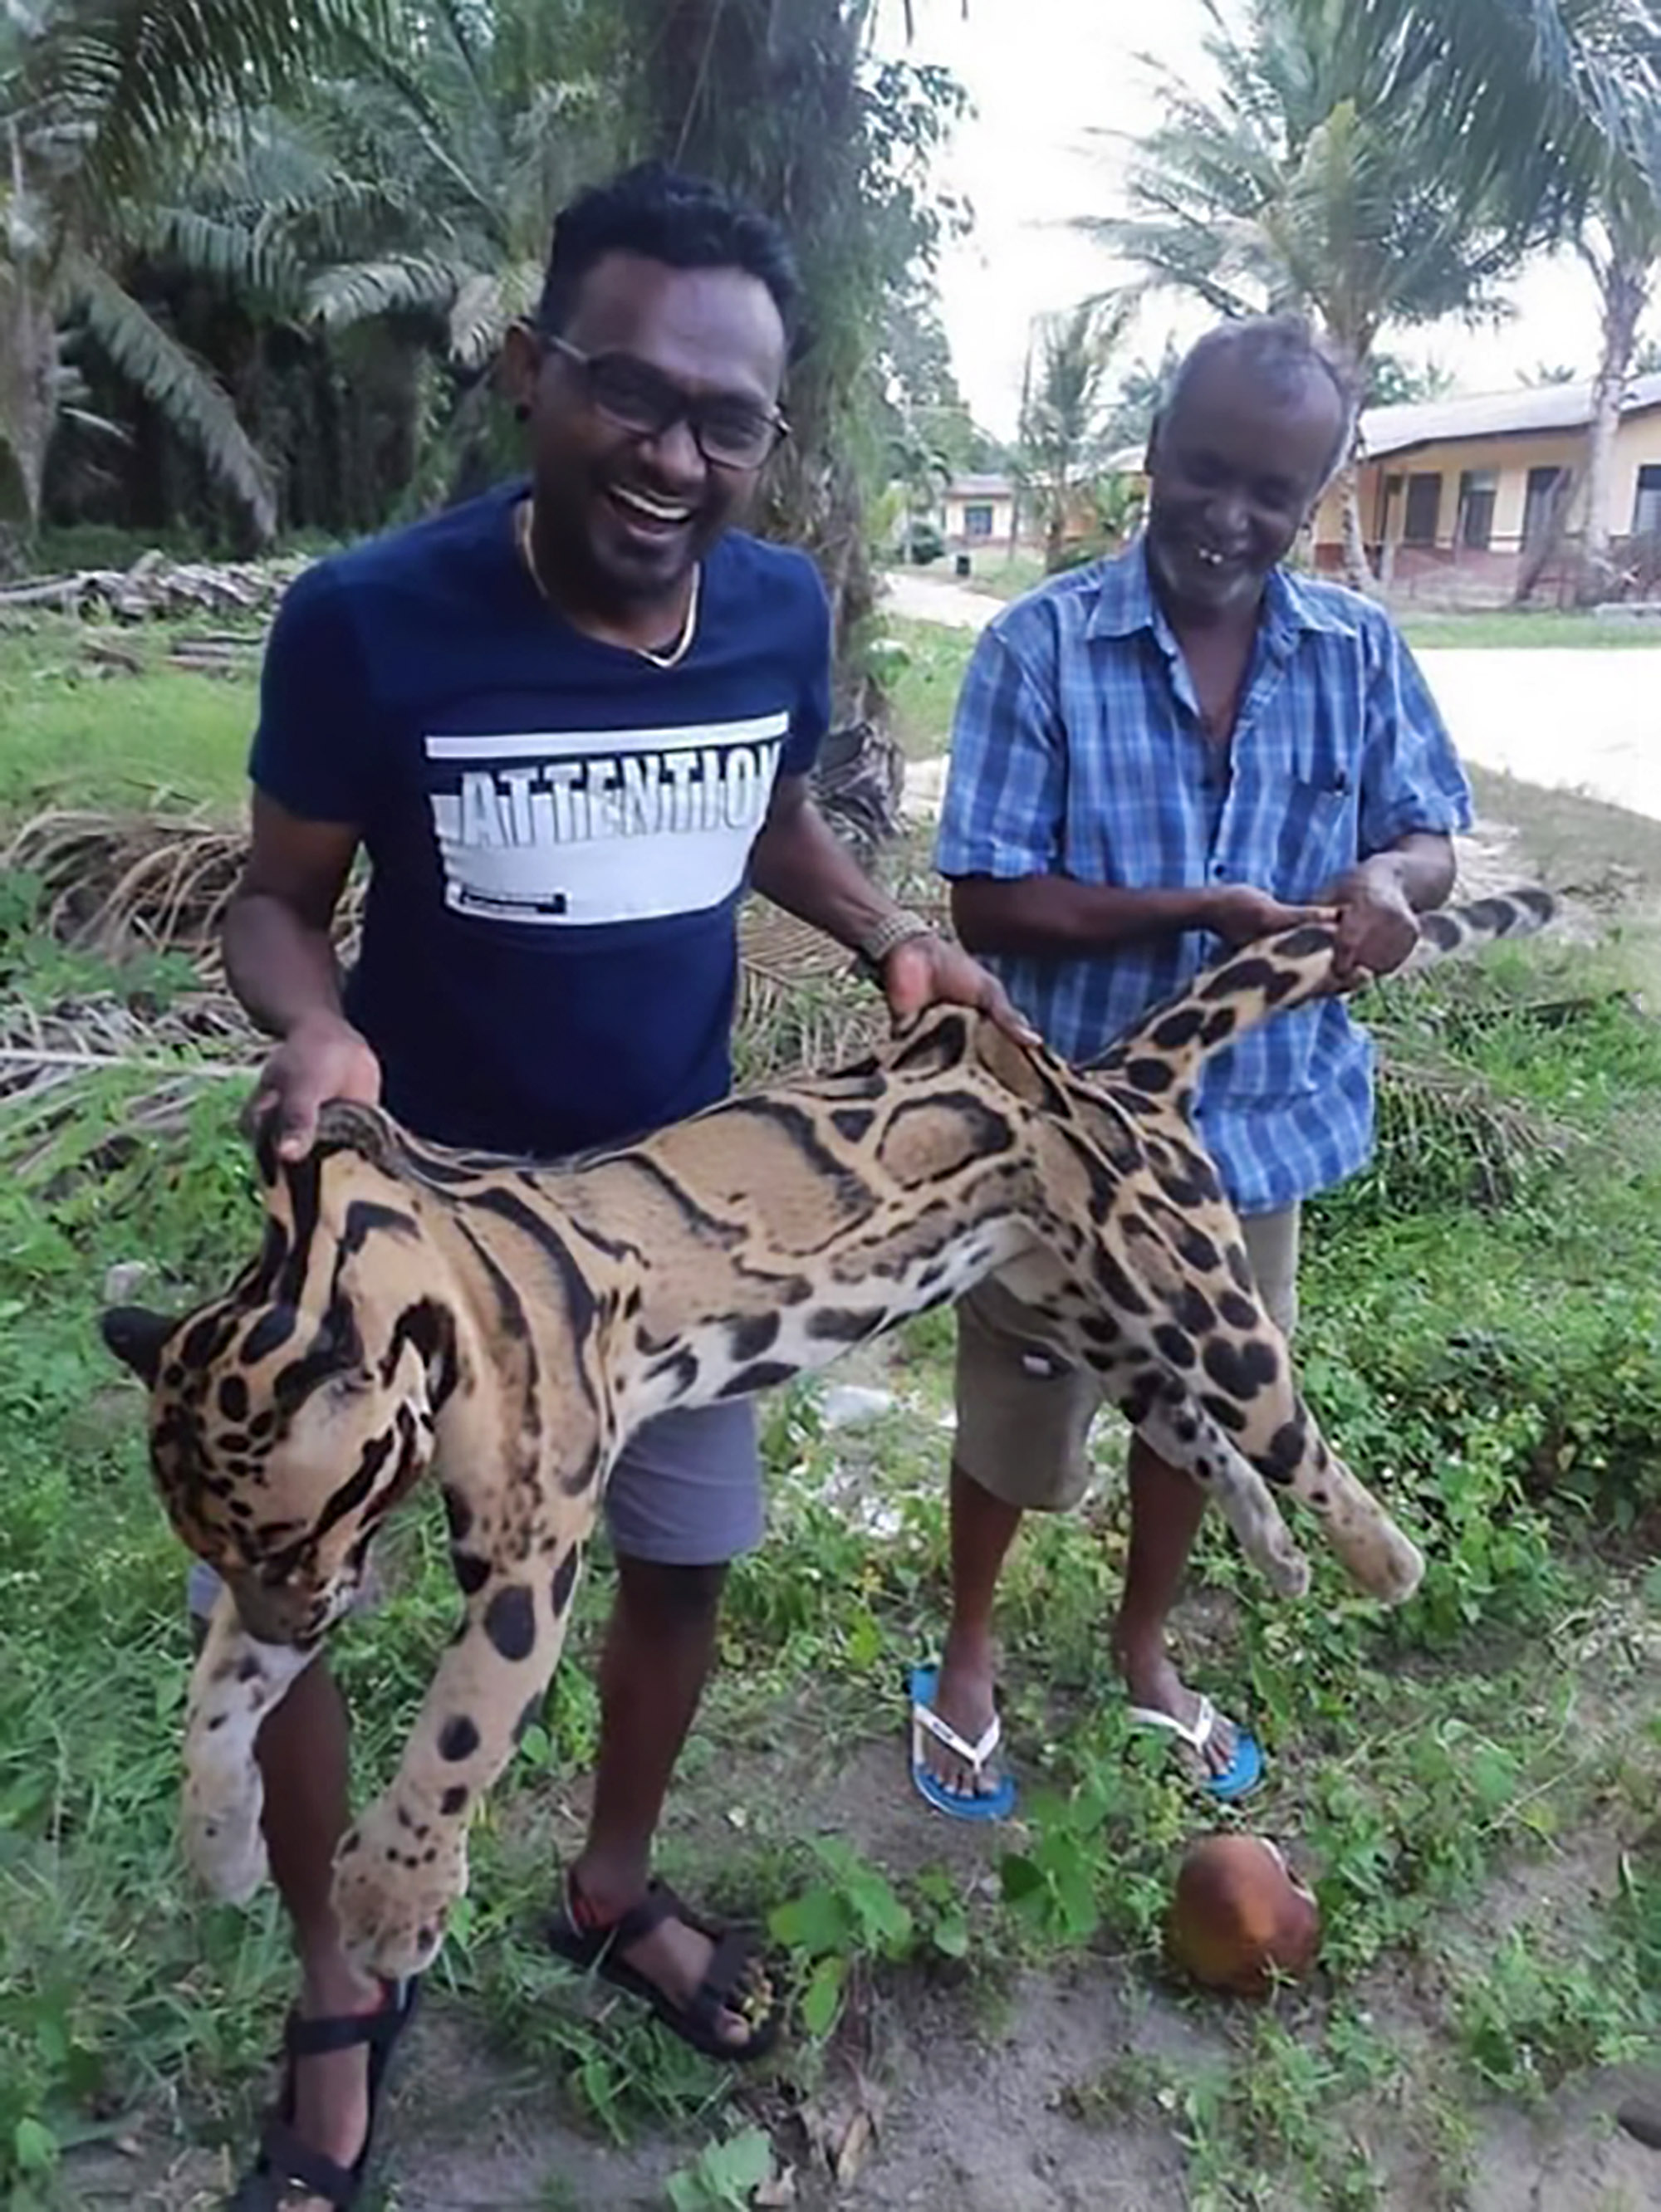 The suspected poachers with the leopard. Credit: AsiaWire